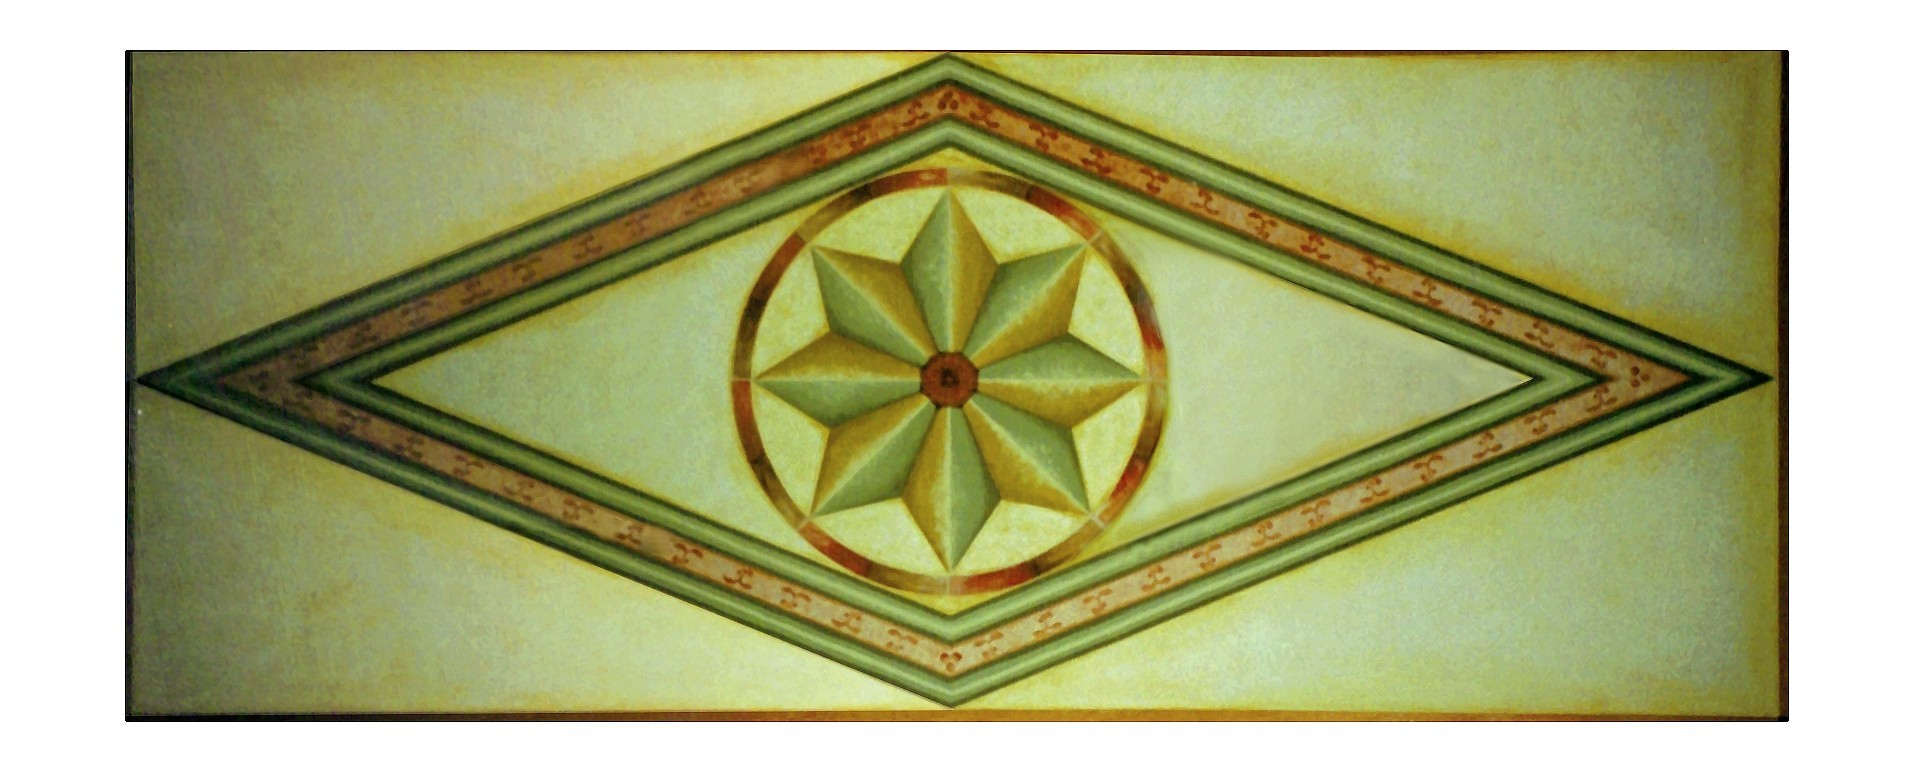 diamond ceiling mural.jpg